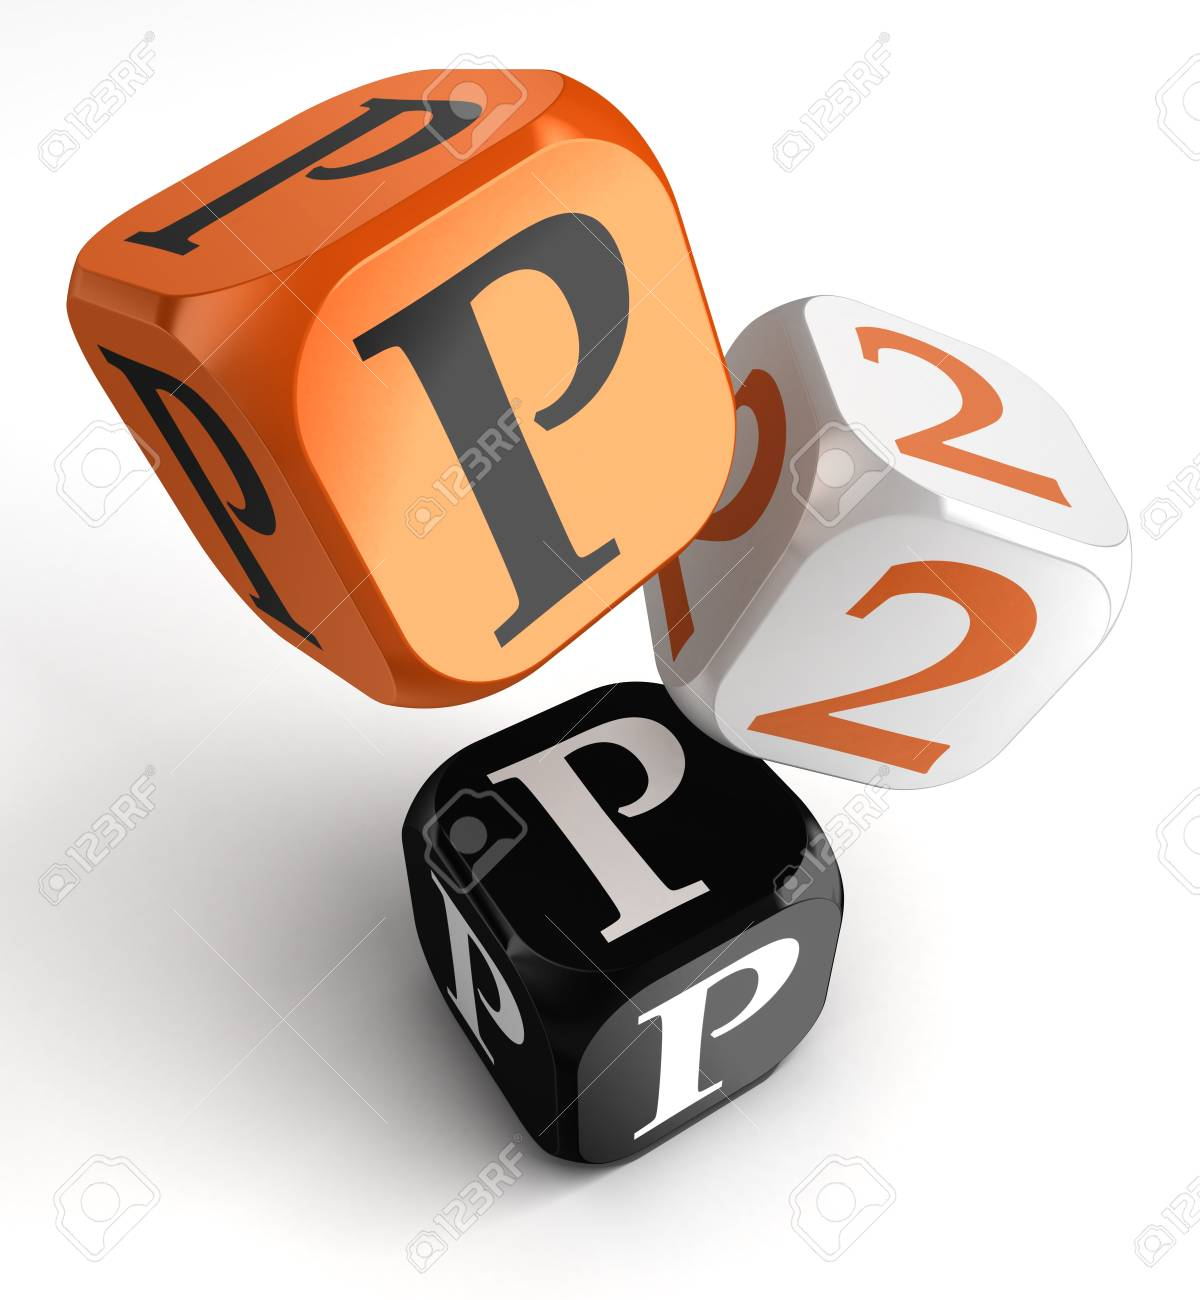 P2p orange black dice blocks on white background  clipping path included Stock Photo - 19022379